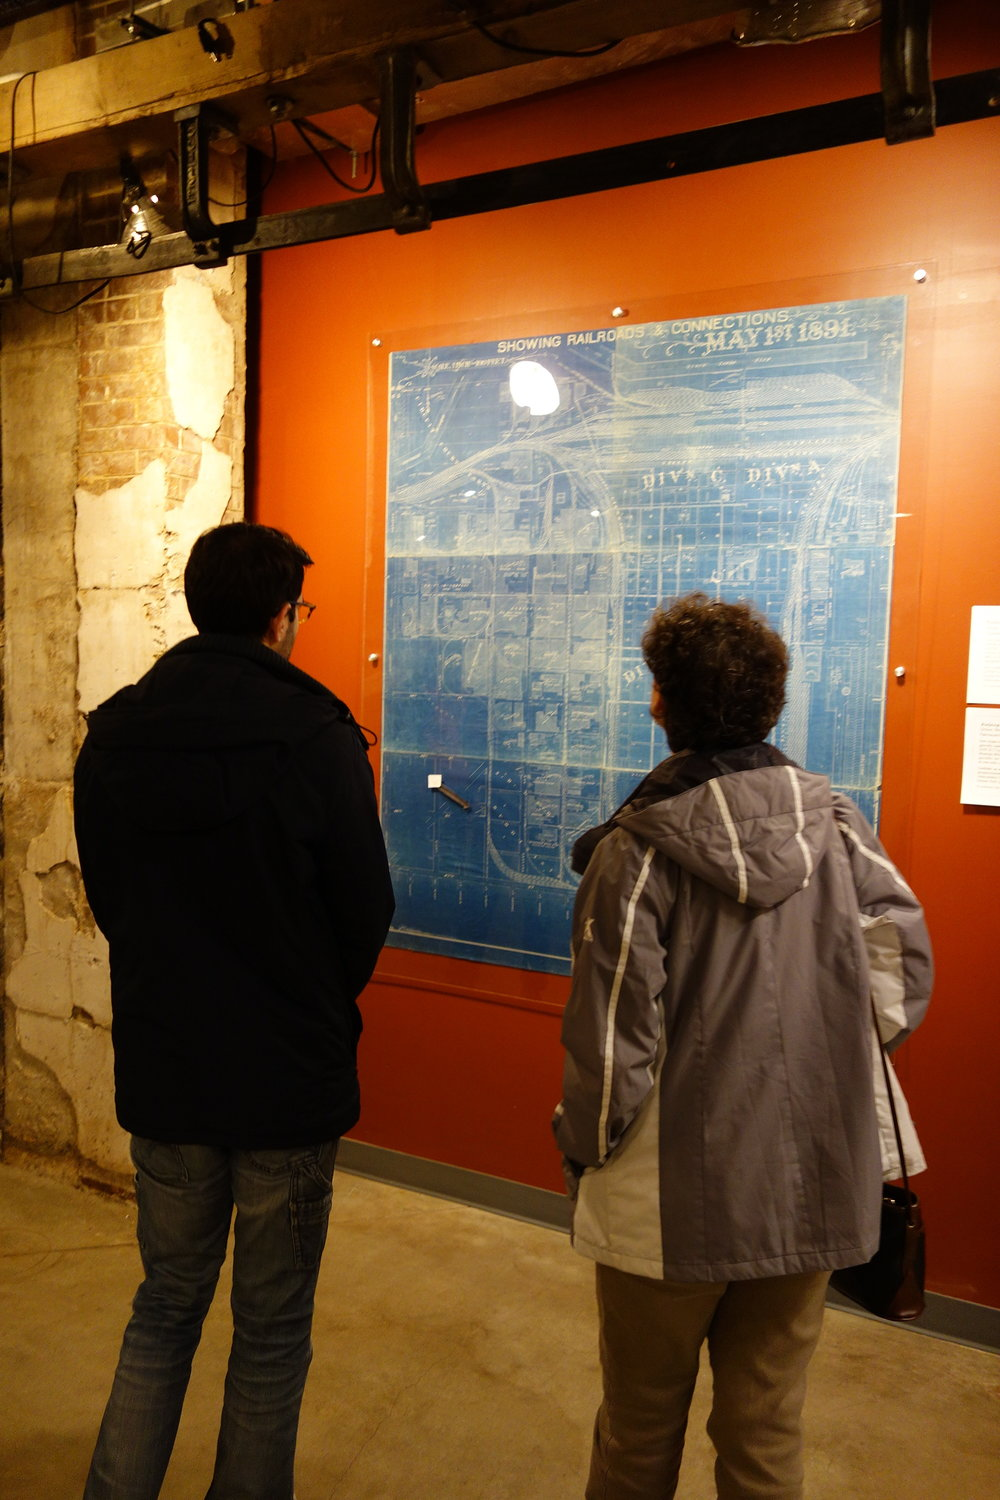 The future Packingtown Museum space was open at The Plant during Open House Chicago 2017. It included a preview of the museum themes and featured a map of the Union Stock Yard and Packingtown Railroad Connections dated May 1, 1891, on loan from the Dominic A. Pacyga Collection.